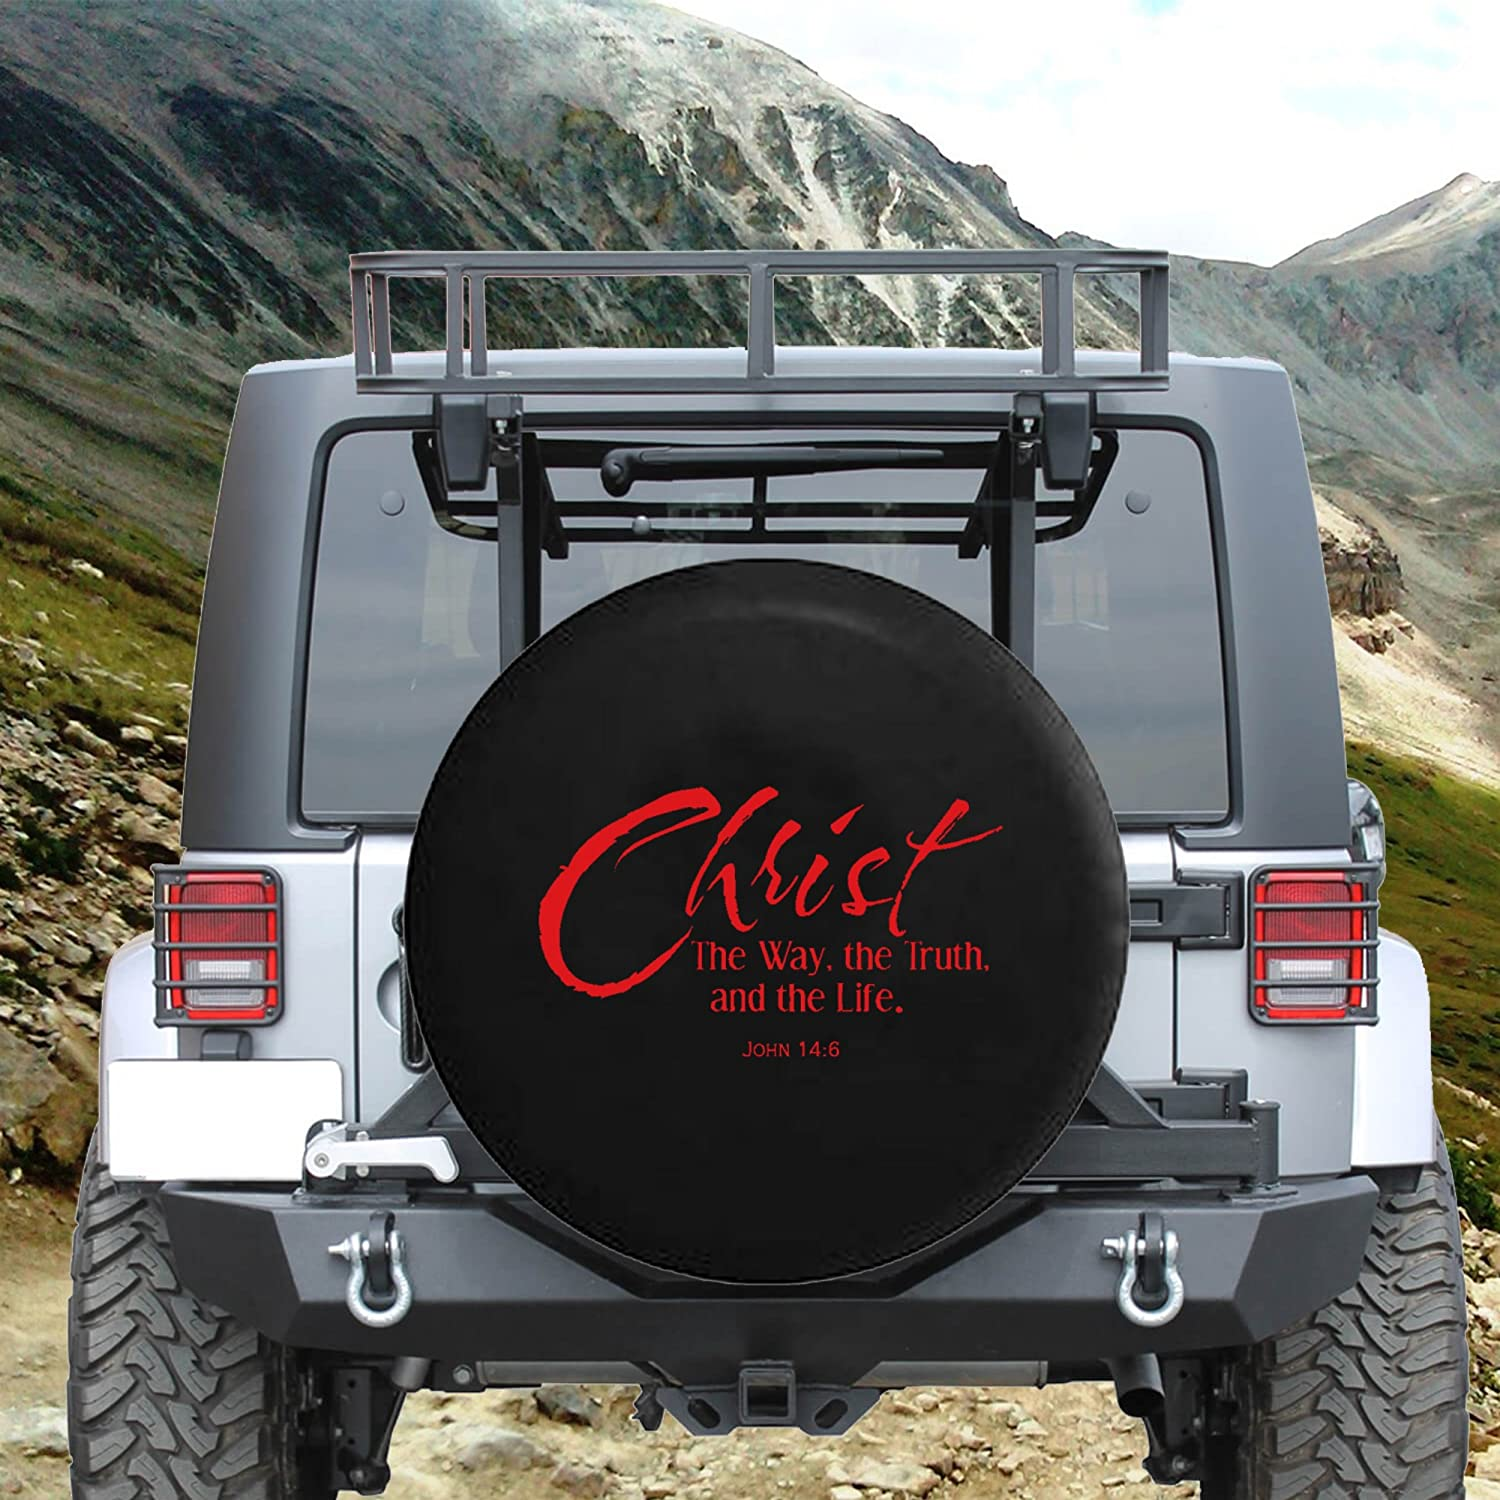 The Truth Christ The Way The Life John 14:6 Spare Jeep Wrangler Camper SUV Tire Cover Gray Ink 35 in Silver Back Covers